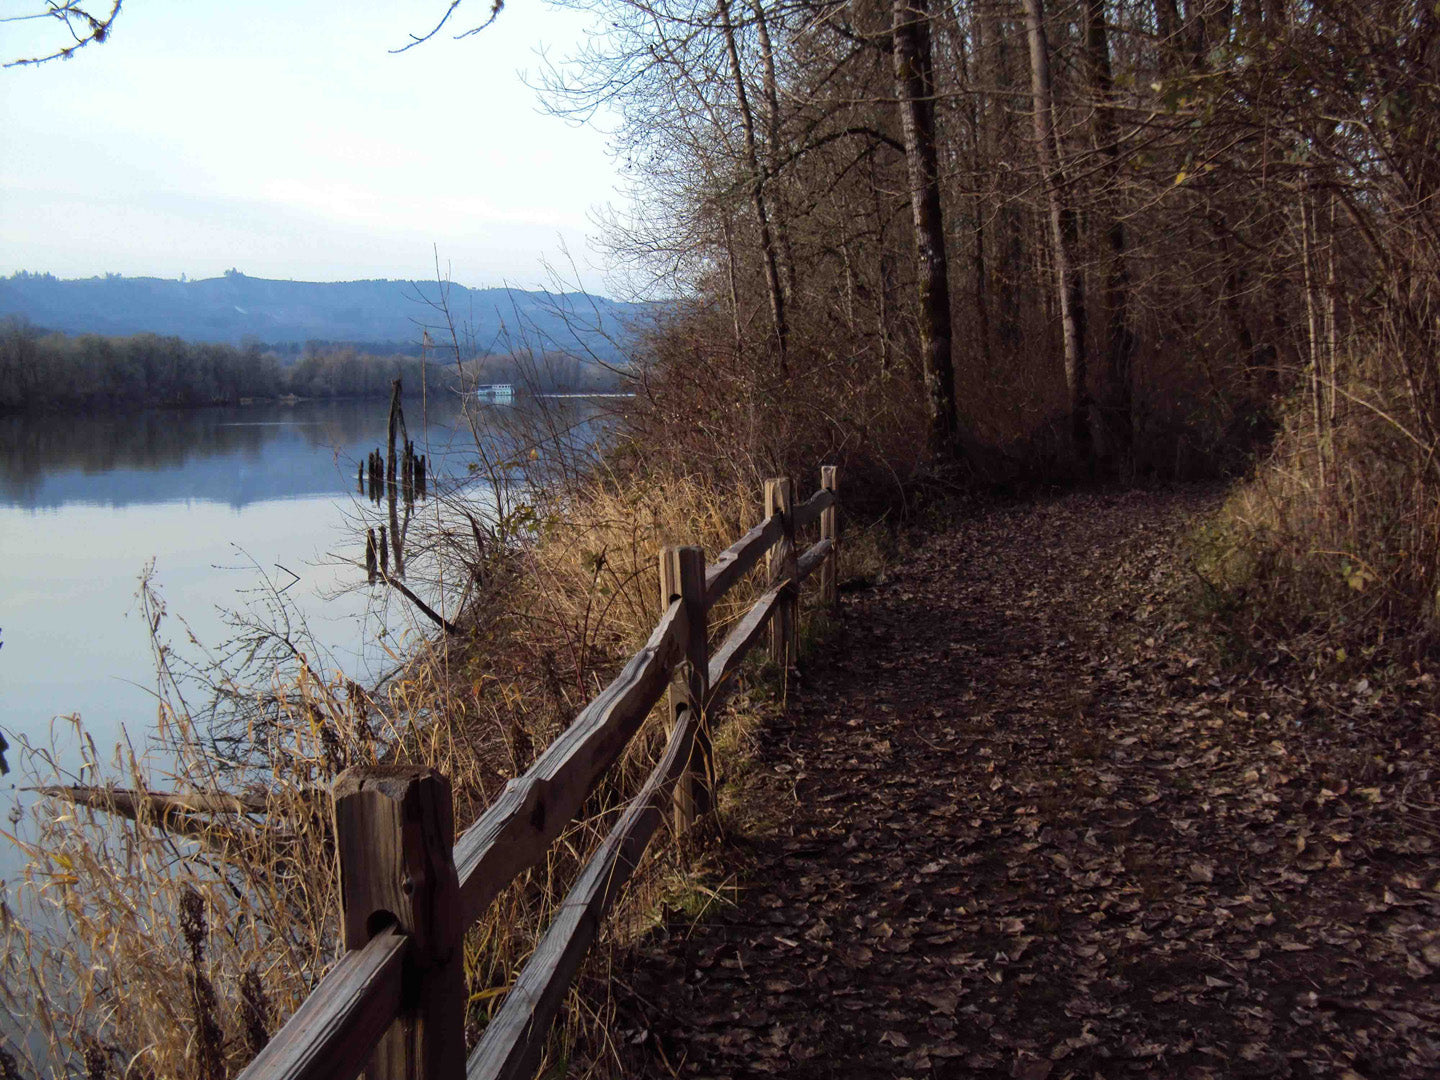 Wapato Access Greenway Trail Multnomah Channel Sauvie Island Oregon